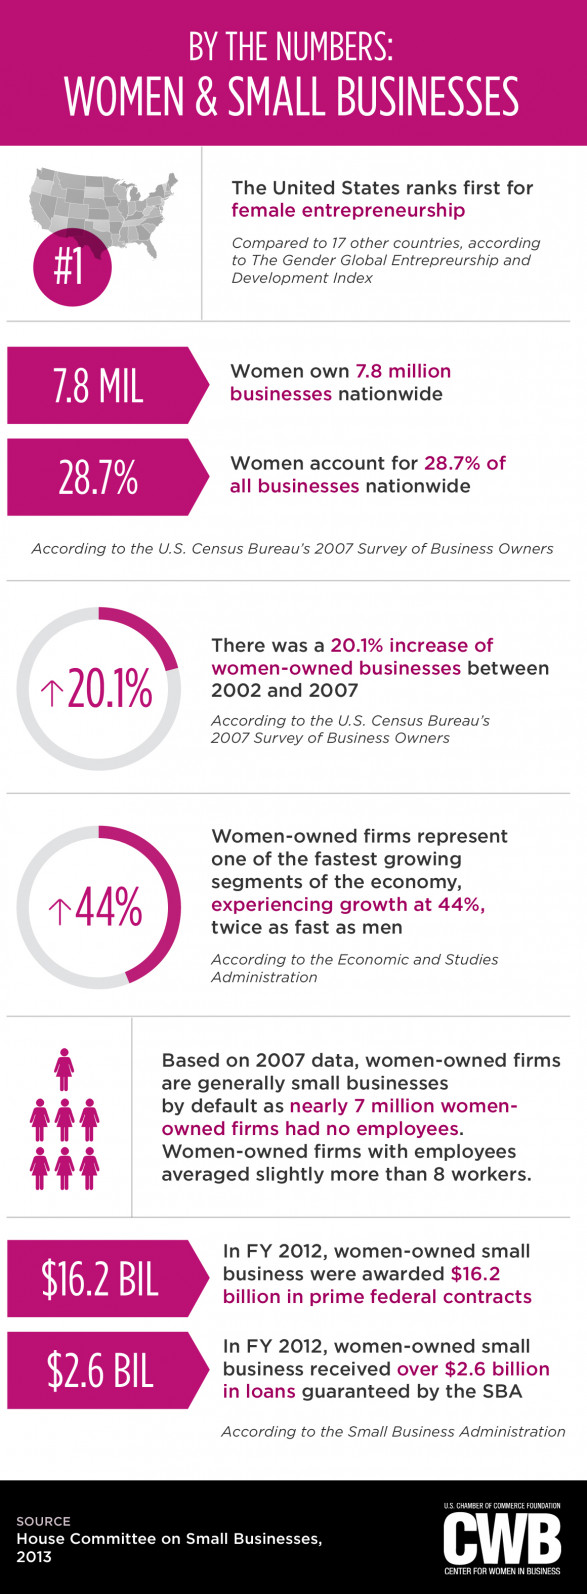 8 Facts Celebrating the Contributions of Women-Owned Small Businesses